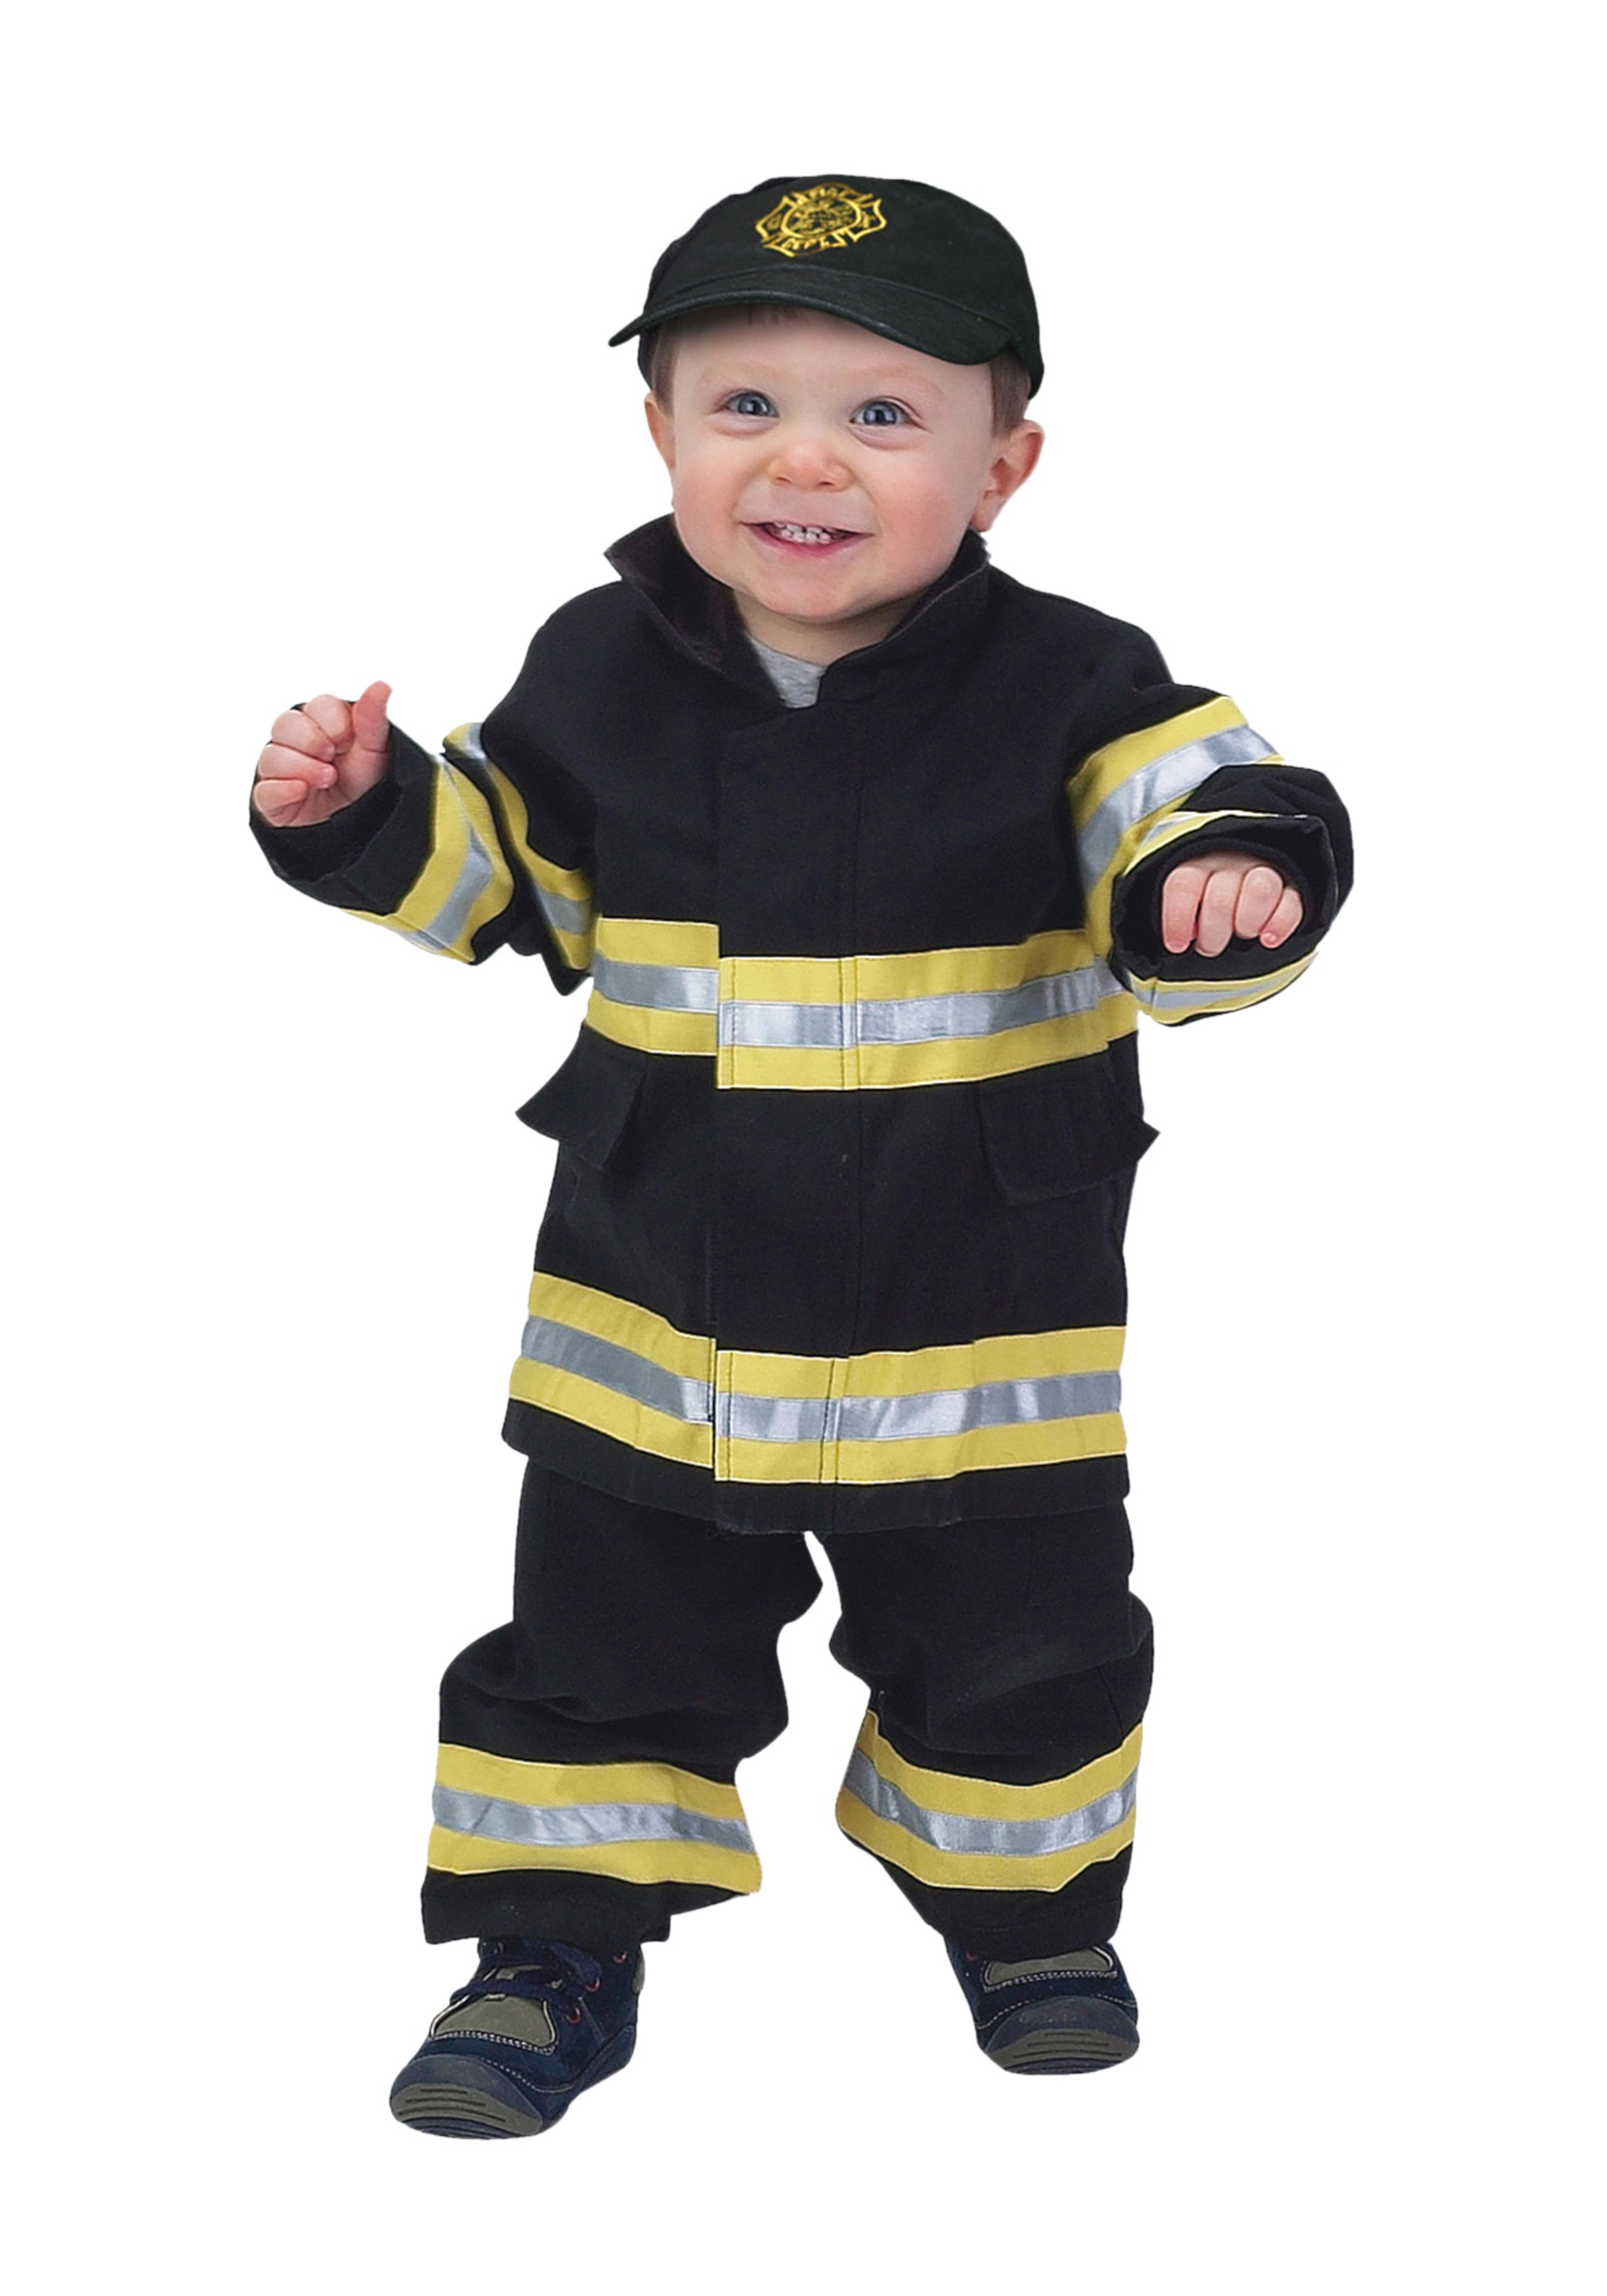 toddler black and yellow firefighter costume - Fireman Halloween